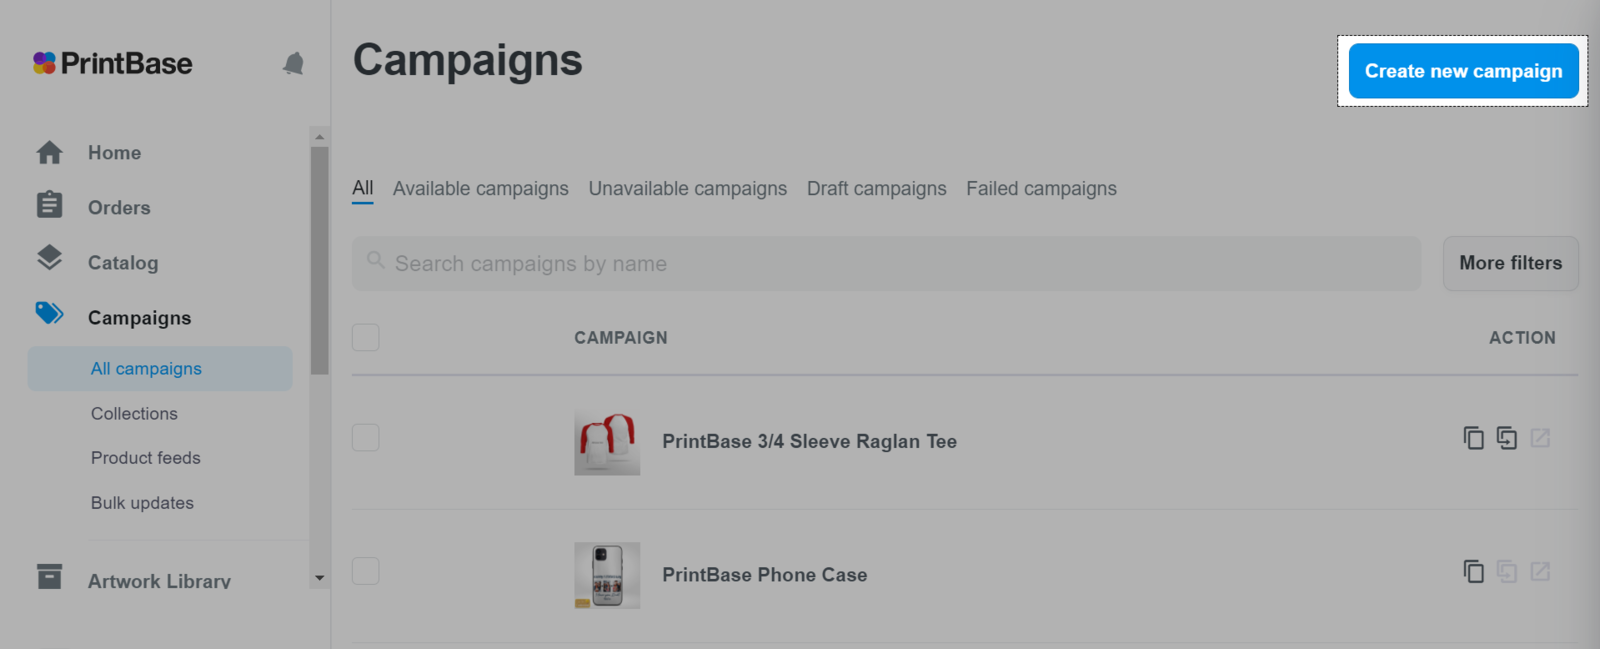 Create a campaign on Campaigns với PrintBase